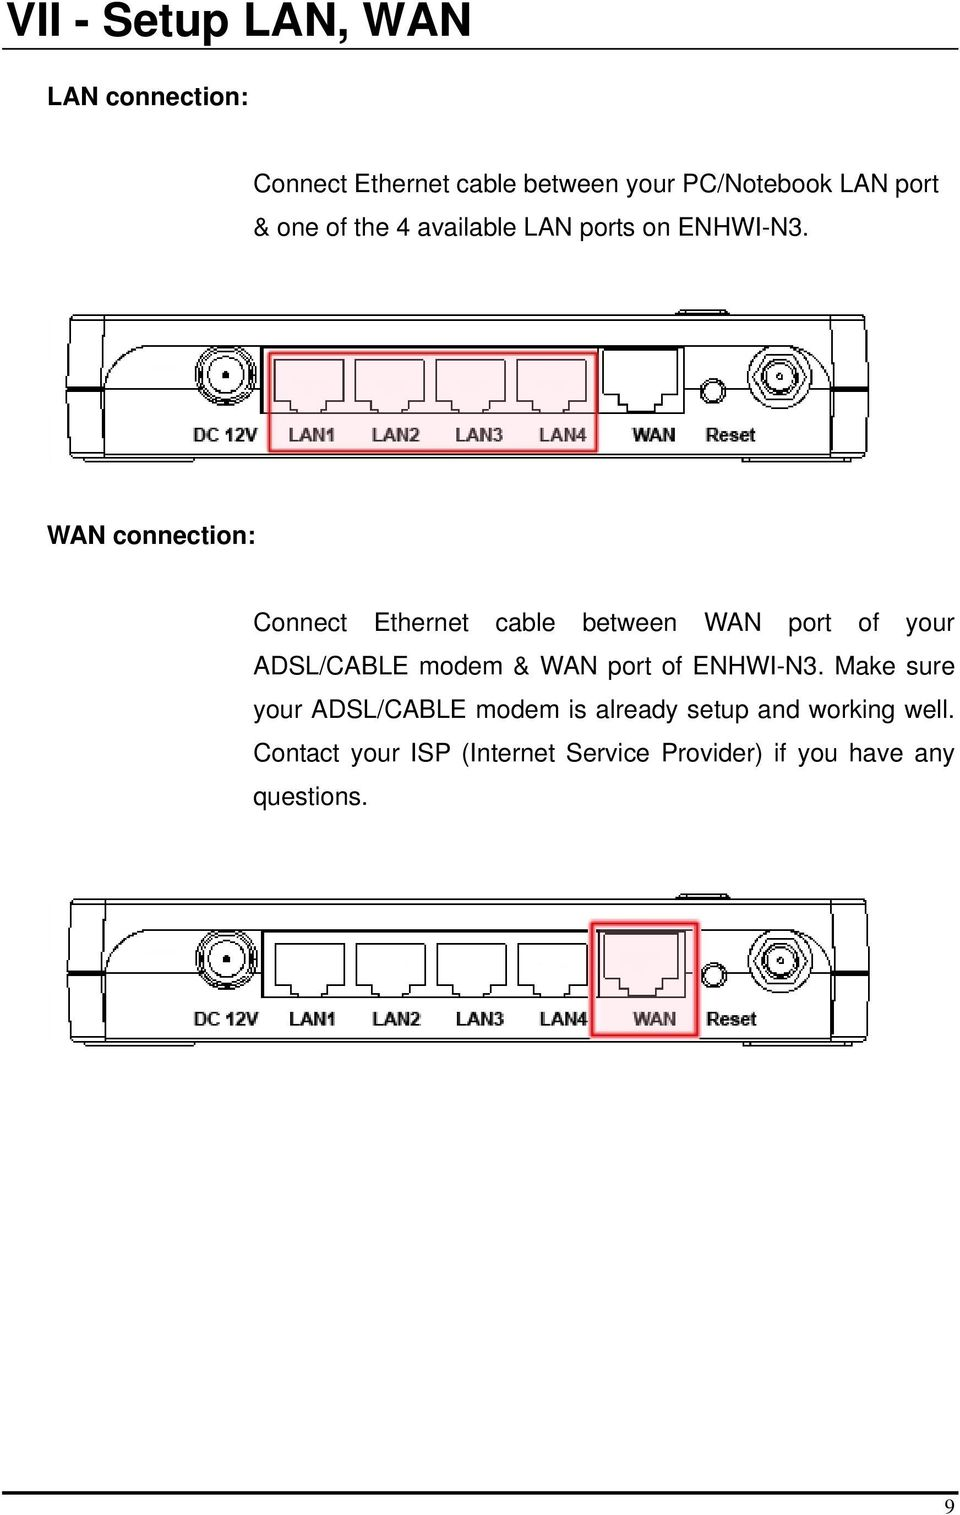 WAN connection: Connect Ethernet cable between WAN port of your ADSL/CABLE modem & WAN port of